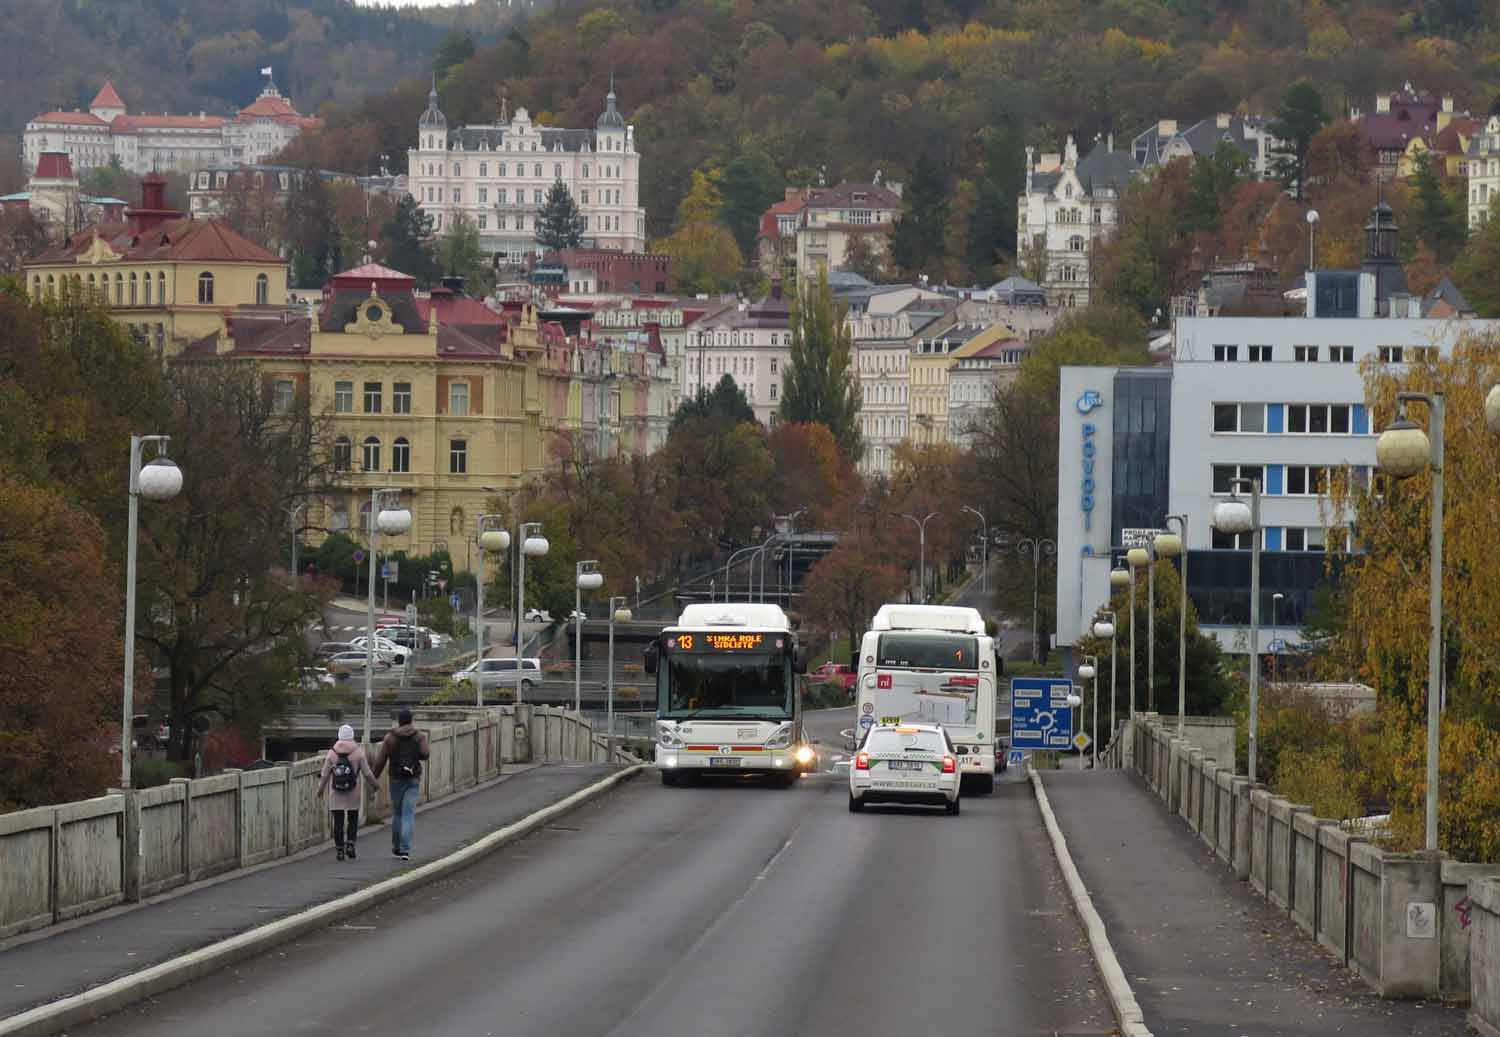 Czech-Republic-Karlovy-Vary-Approach-To-Town